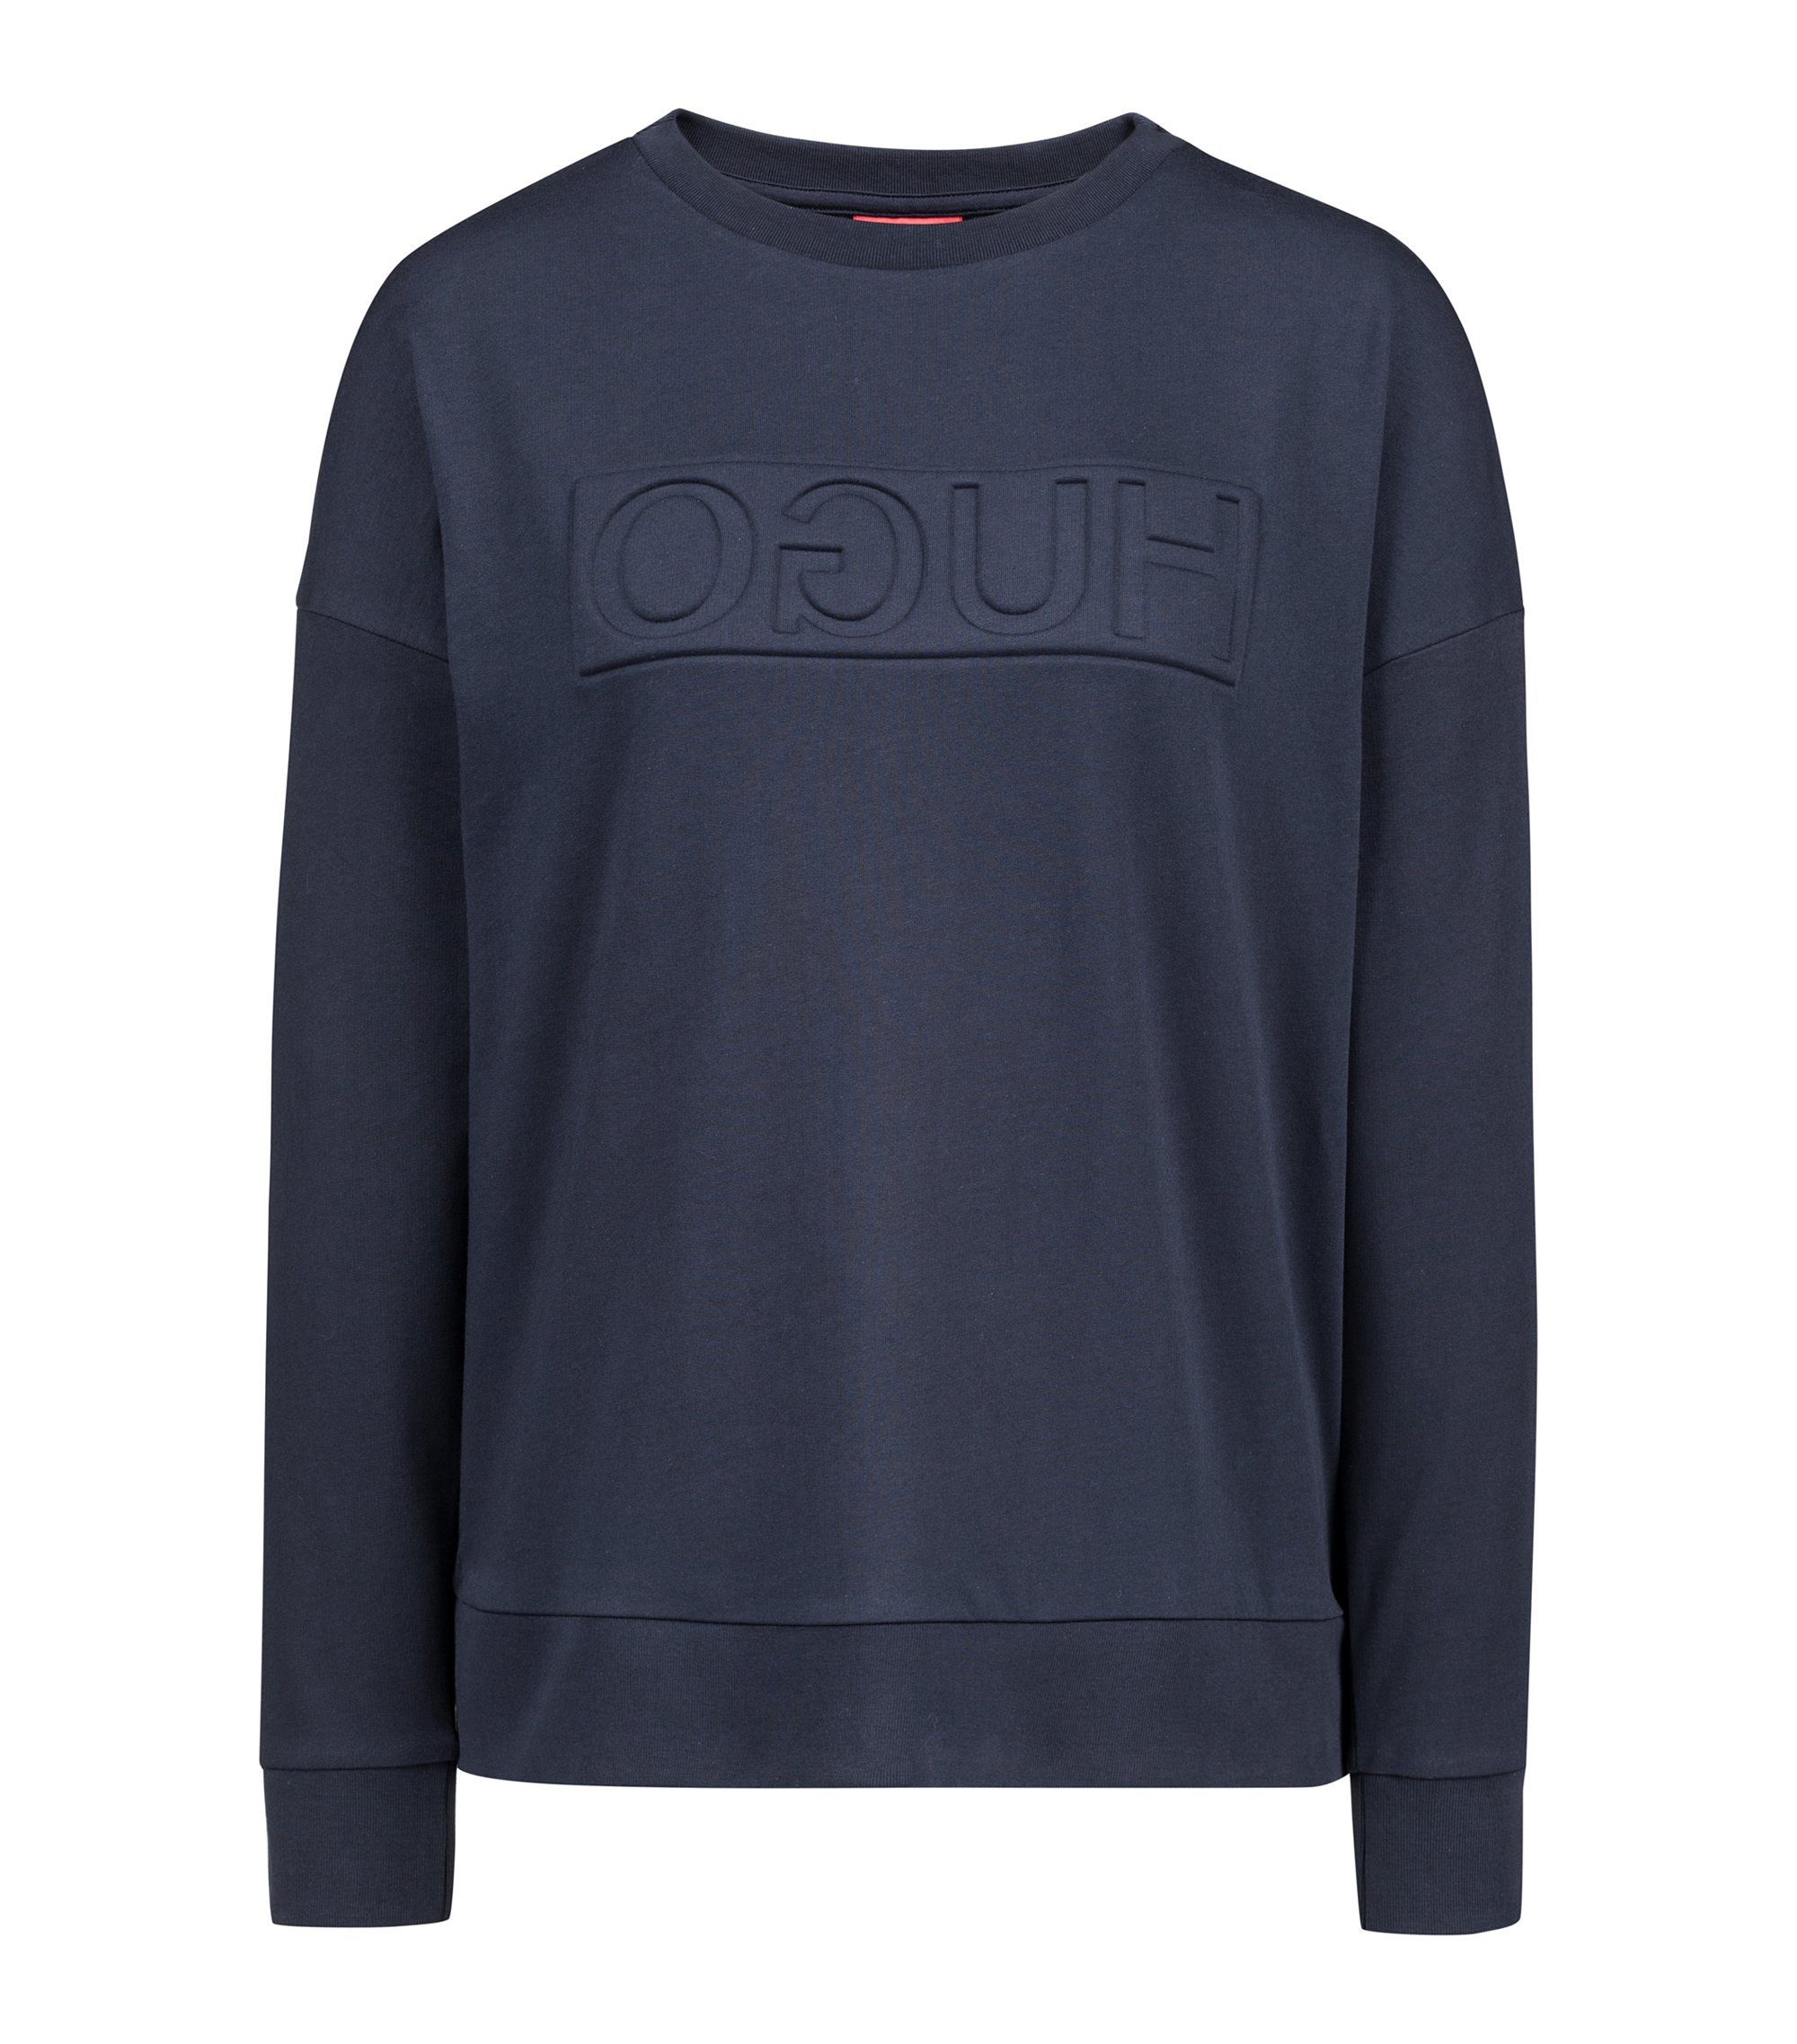 Sweat en molleton French Terry à logo inversé, Bleu foncé